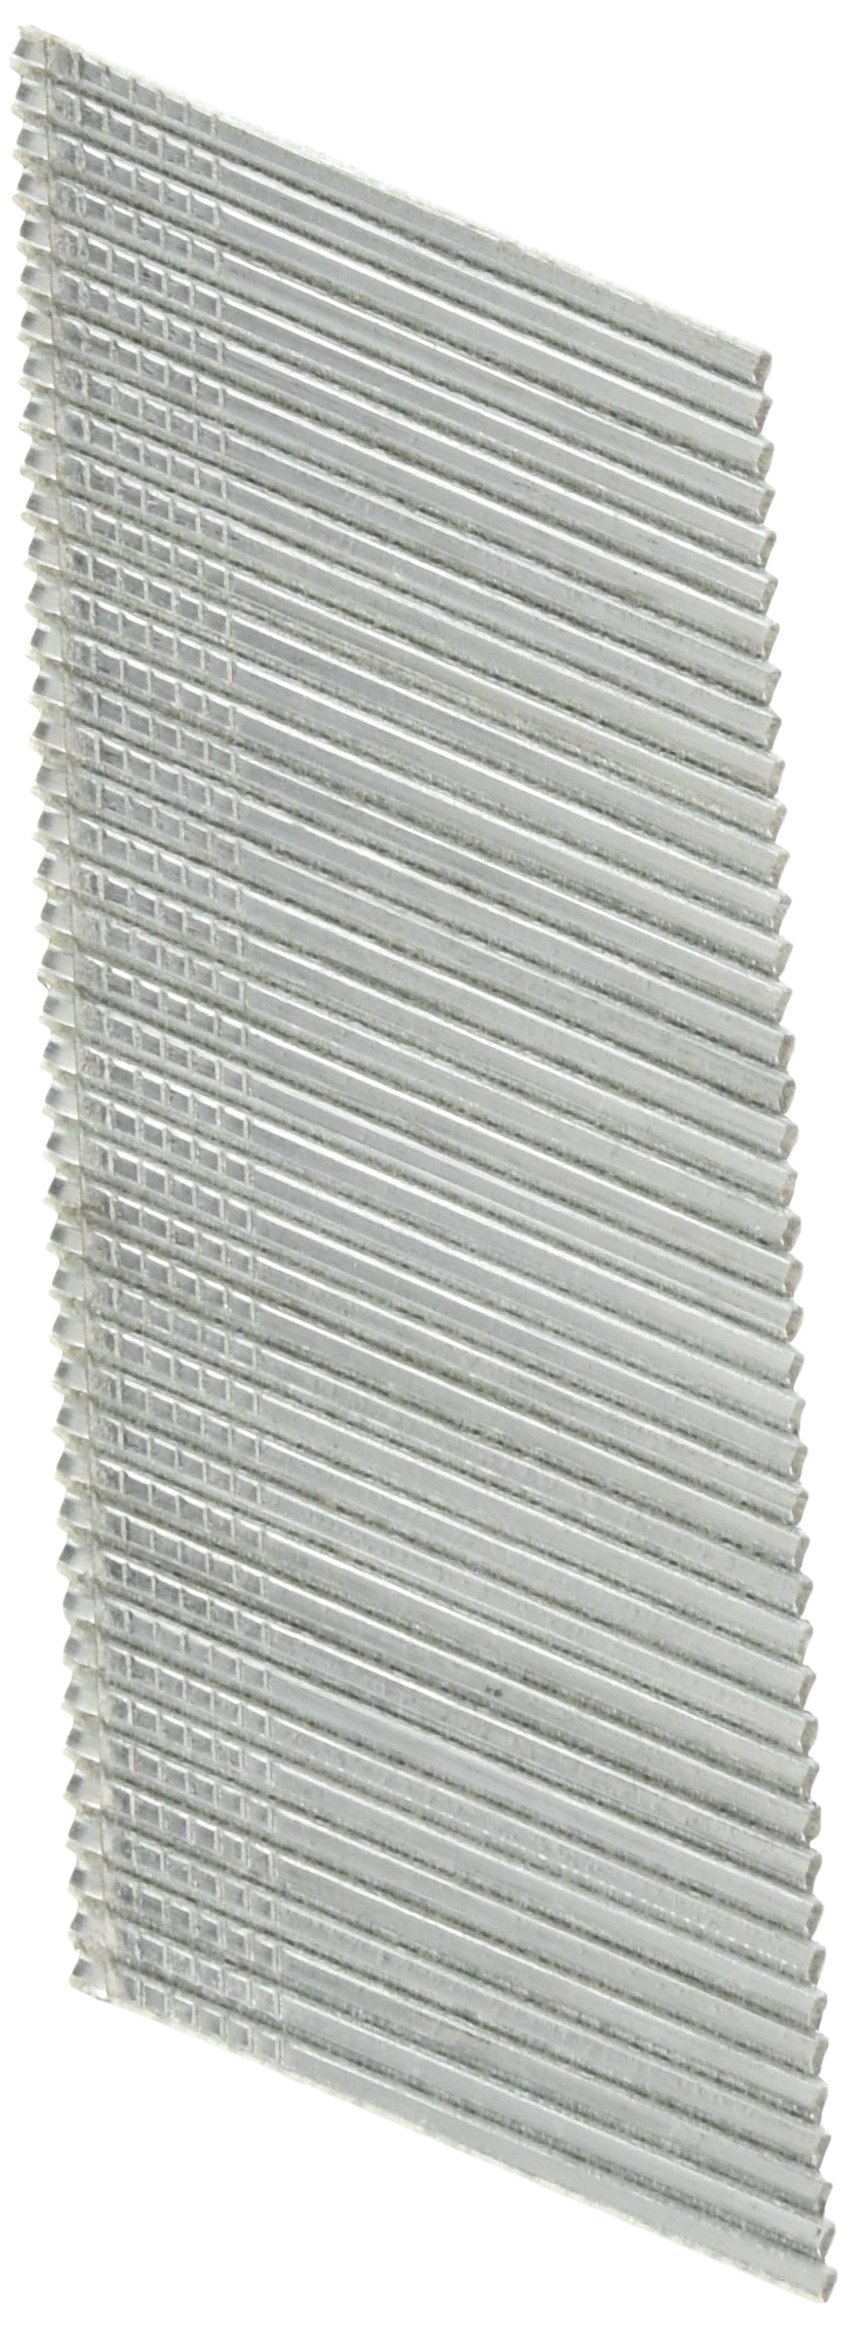 BOSTITCH FN1524 1-1/2-Inch by 15 Gauge by 28 degree Angled Finish Nail (3,655 per Box)